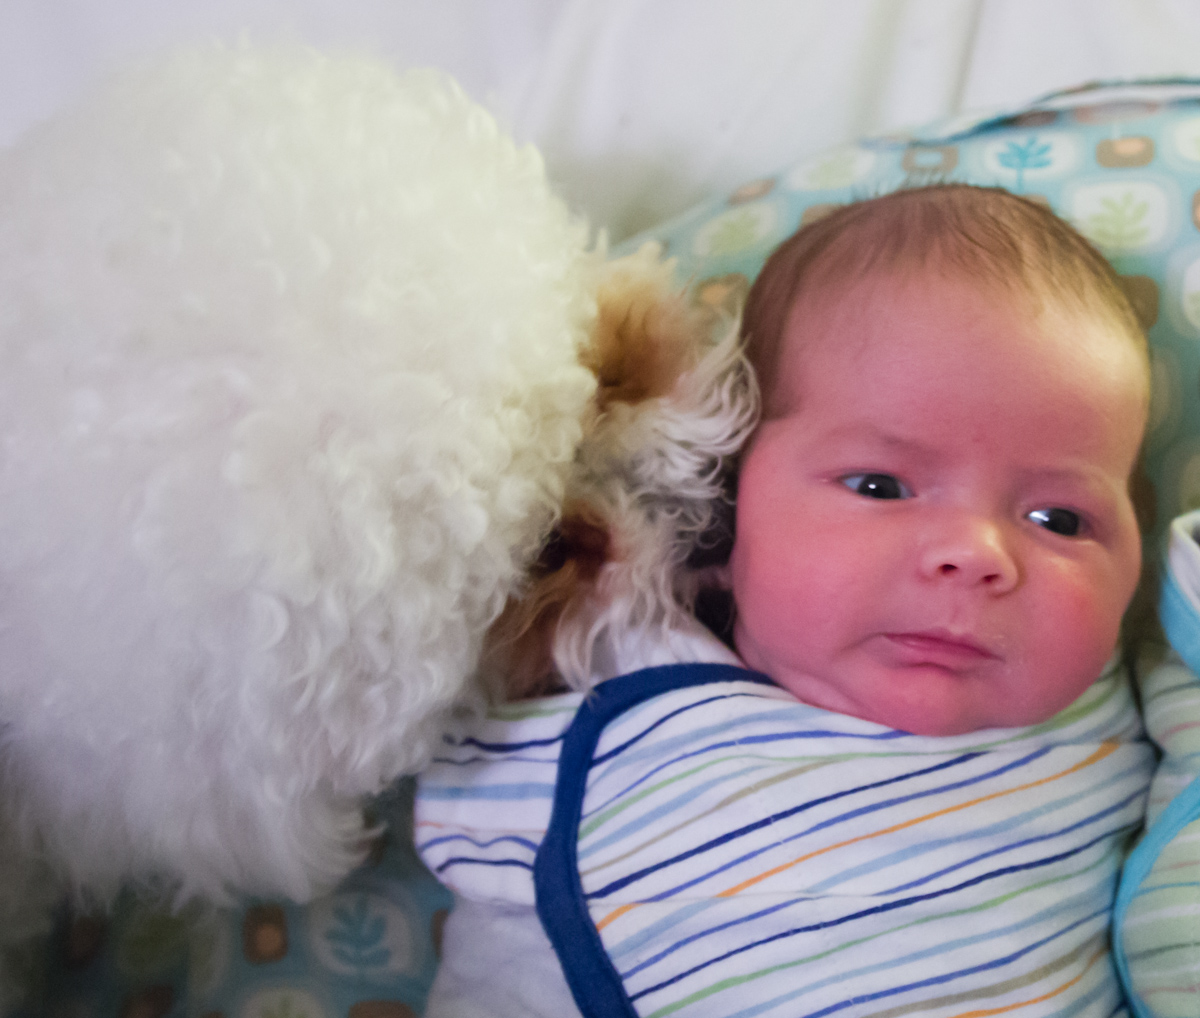 White bichon frise puppy sniffing baby boy Max's ear while he's swaddled on a Boppy